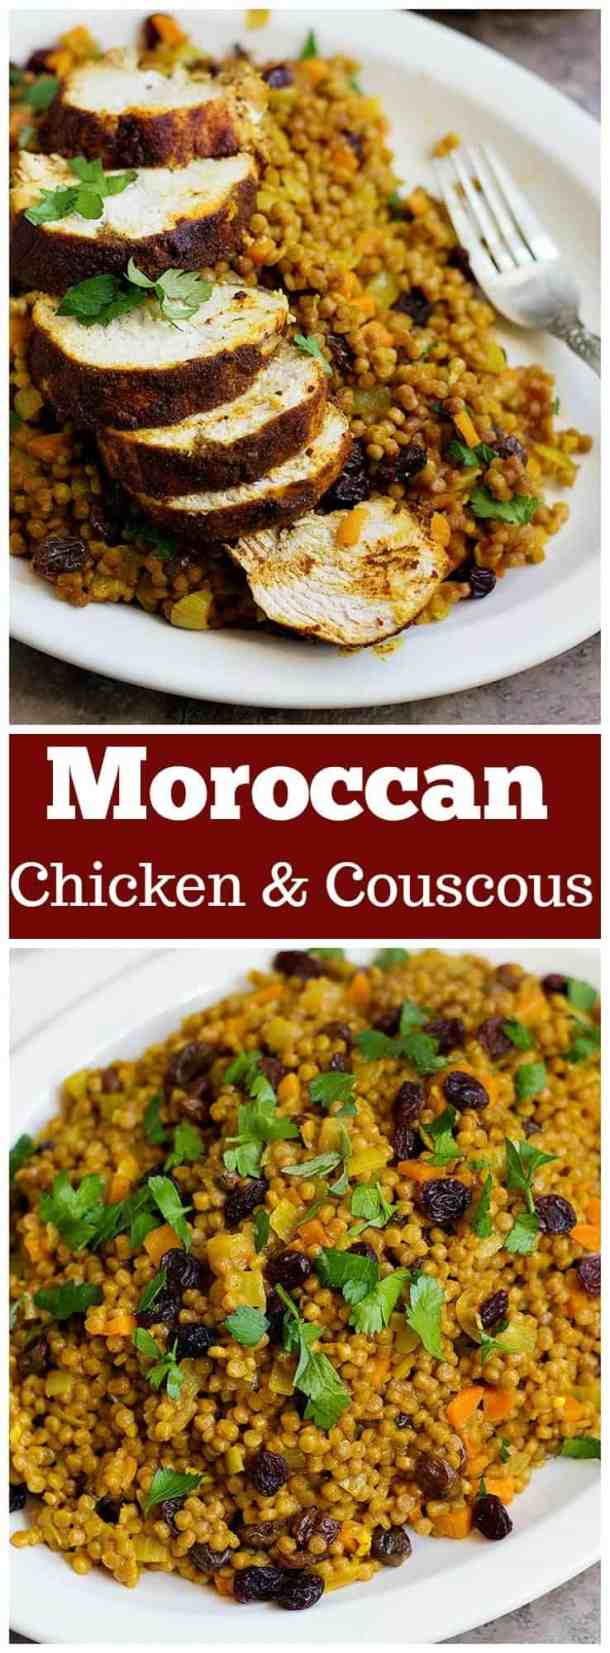 Moroccan Chicken | Moroccan Chicken Recipe | Moroccan chicken and couscous | Moroccan chicken stew | unicornsinthekitchen.com